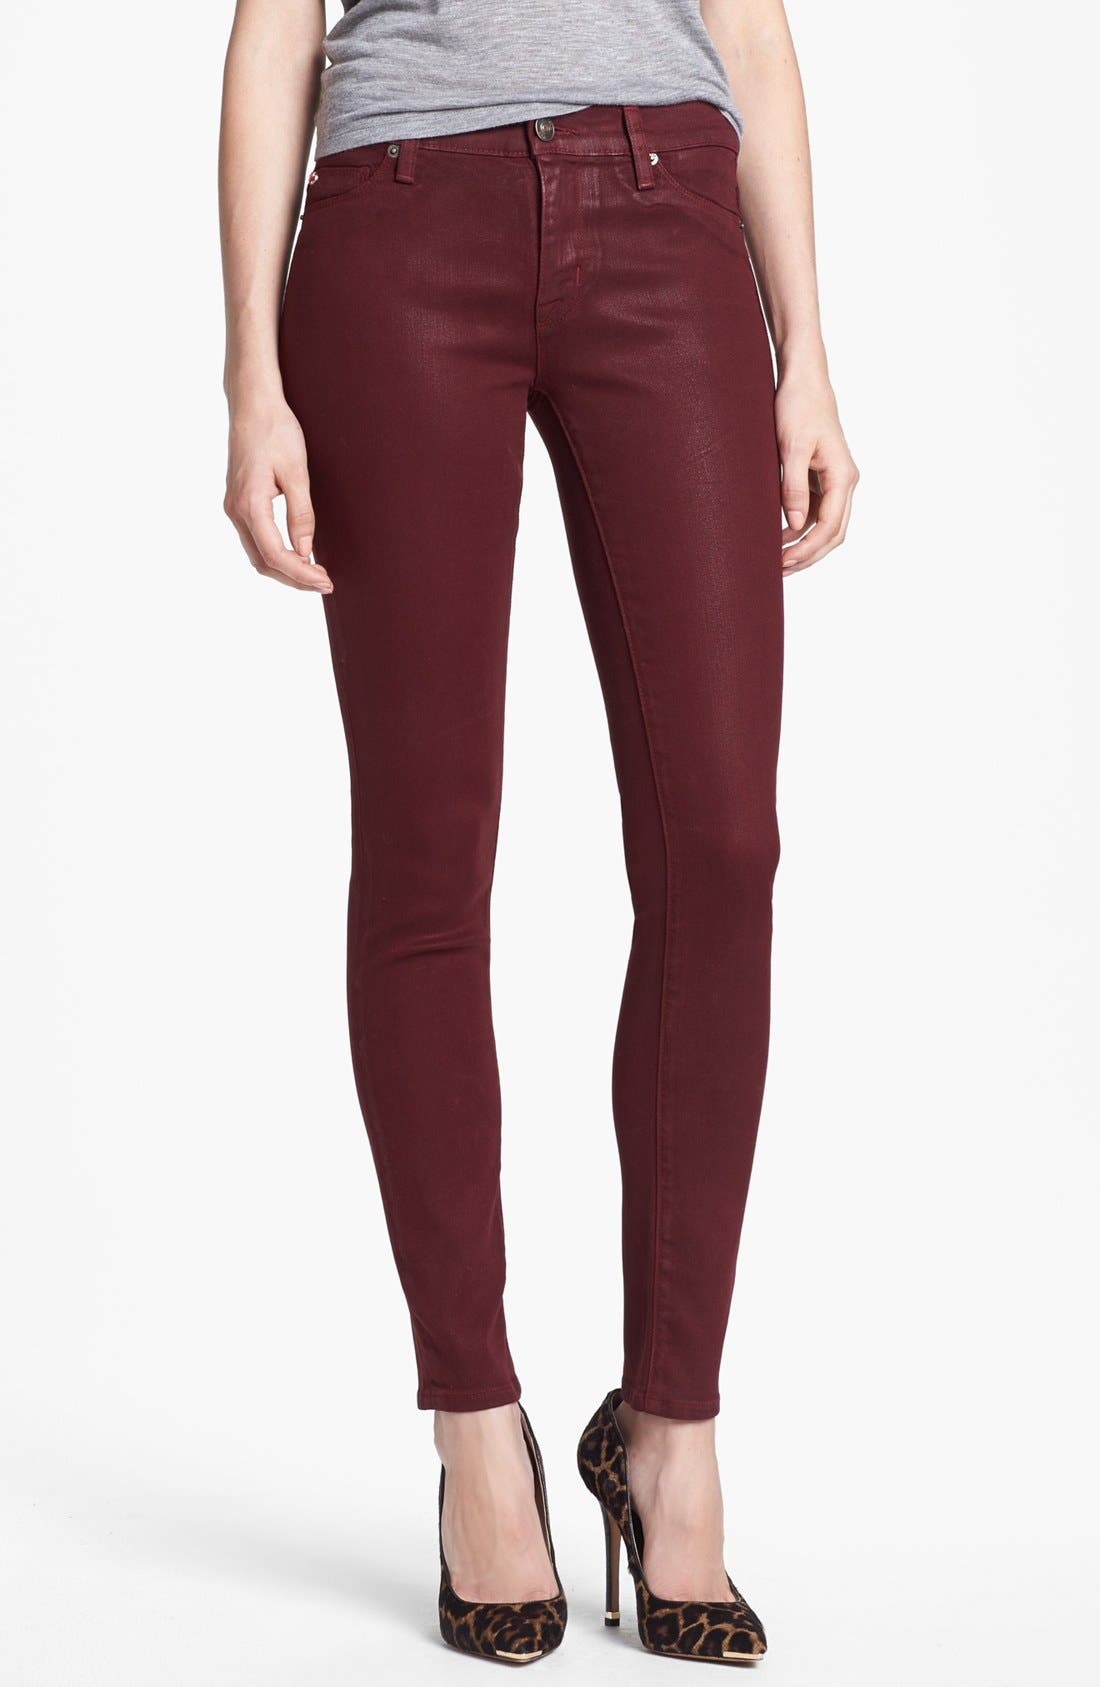 Alternate Image 1 Selected - Hudson Jeans 'Krista' Super Skinny Jeans (Crimson Wax)